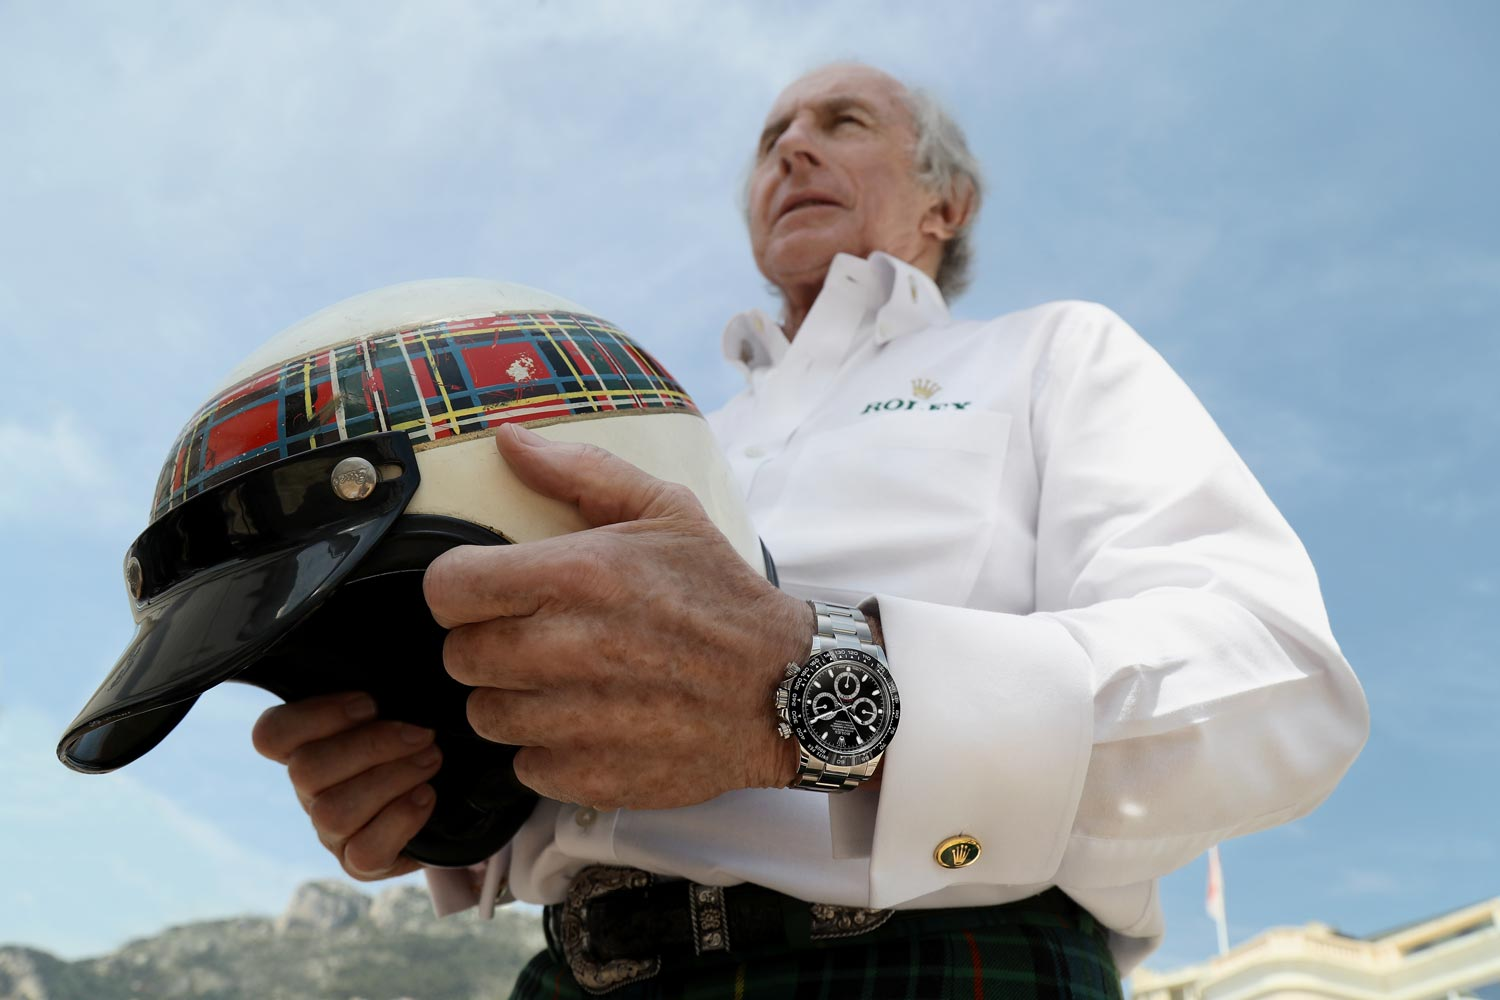 Sir Jackie Stewart wearing his new Rolex Daytona